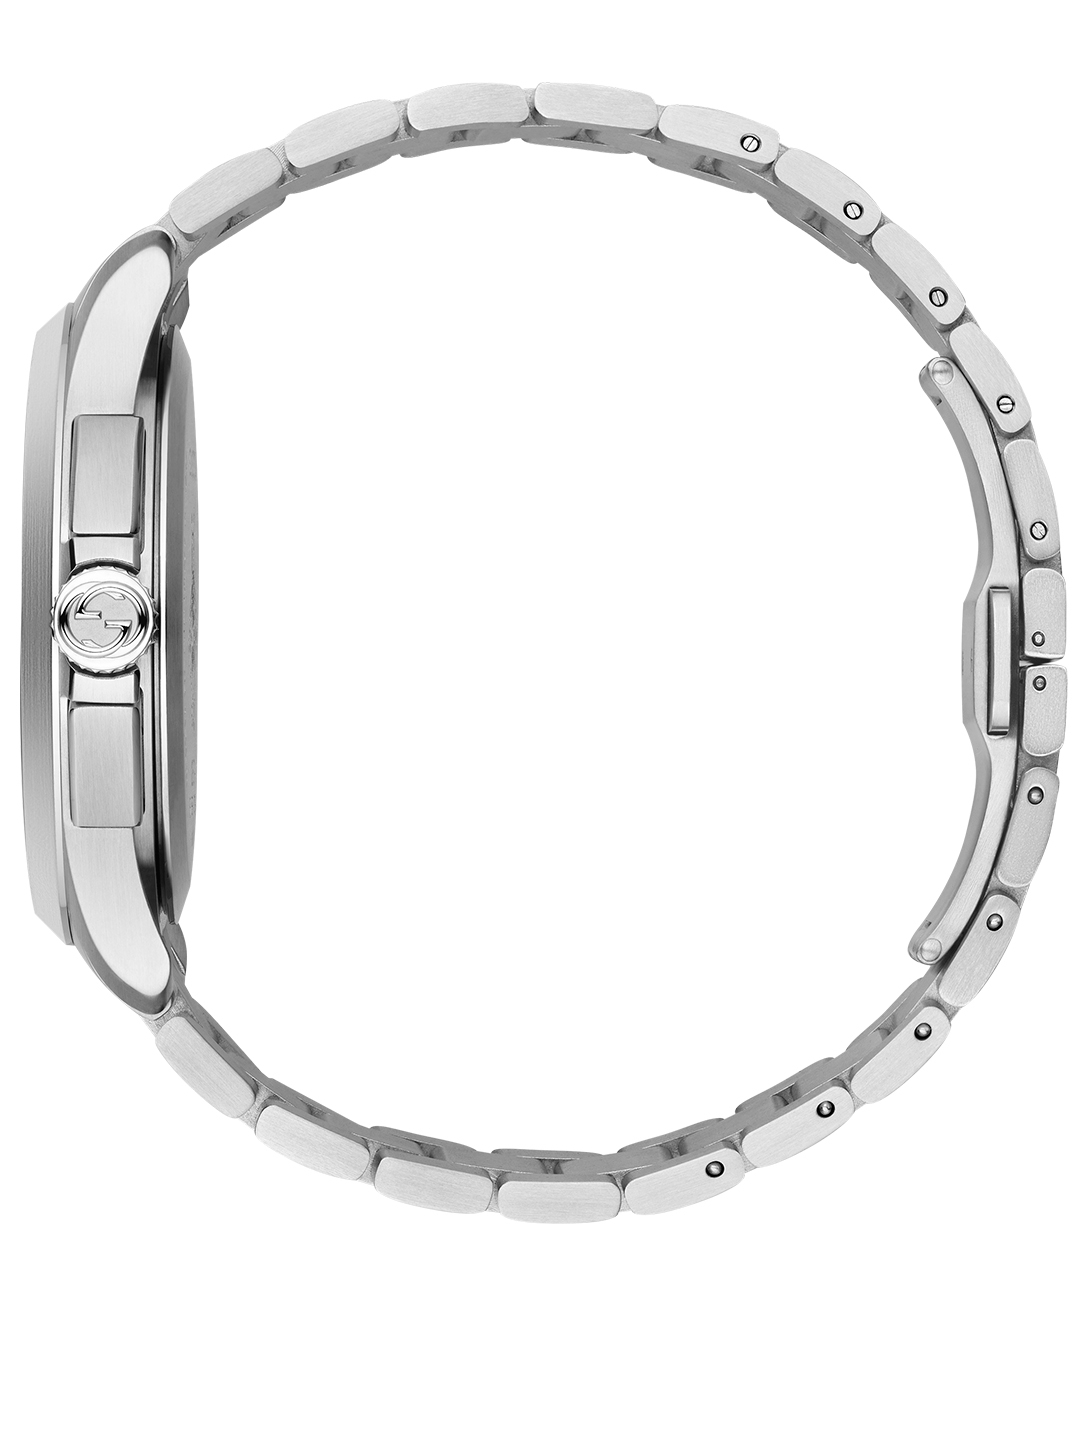 GUCCI G-Timeless Stainless Steel Bracelet Watch Women's Silver